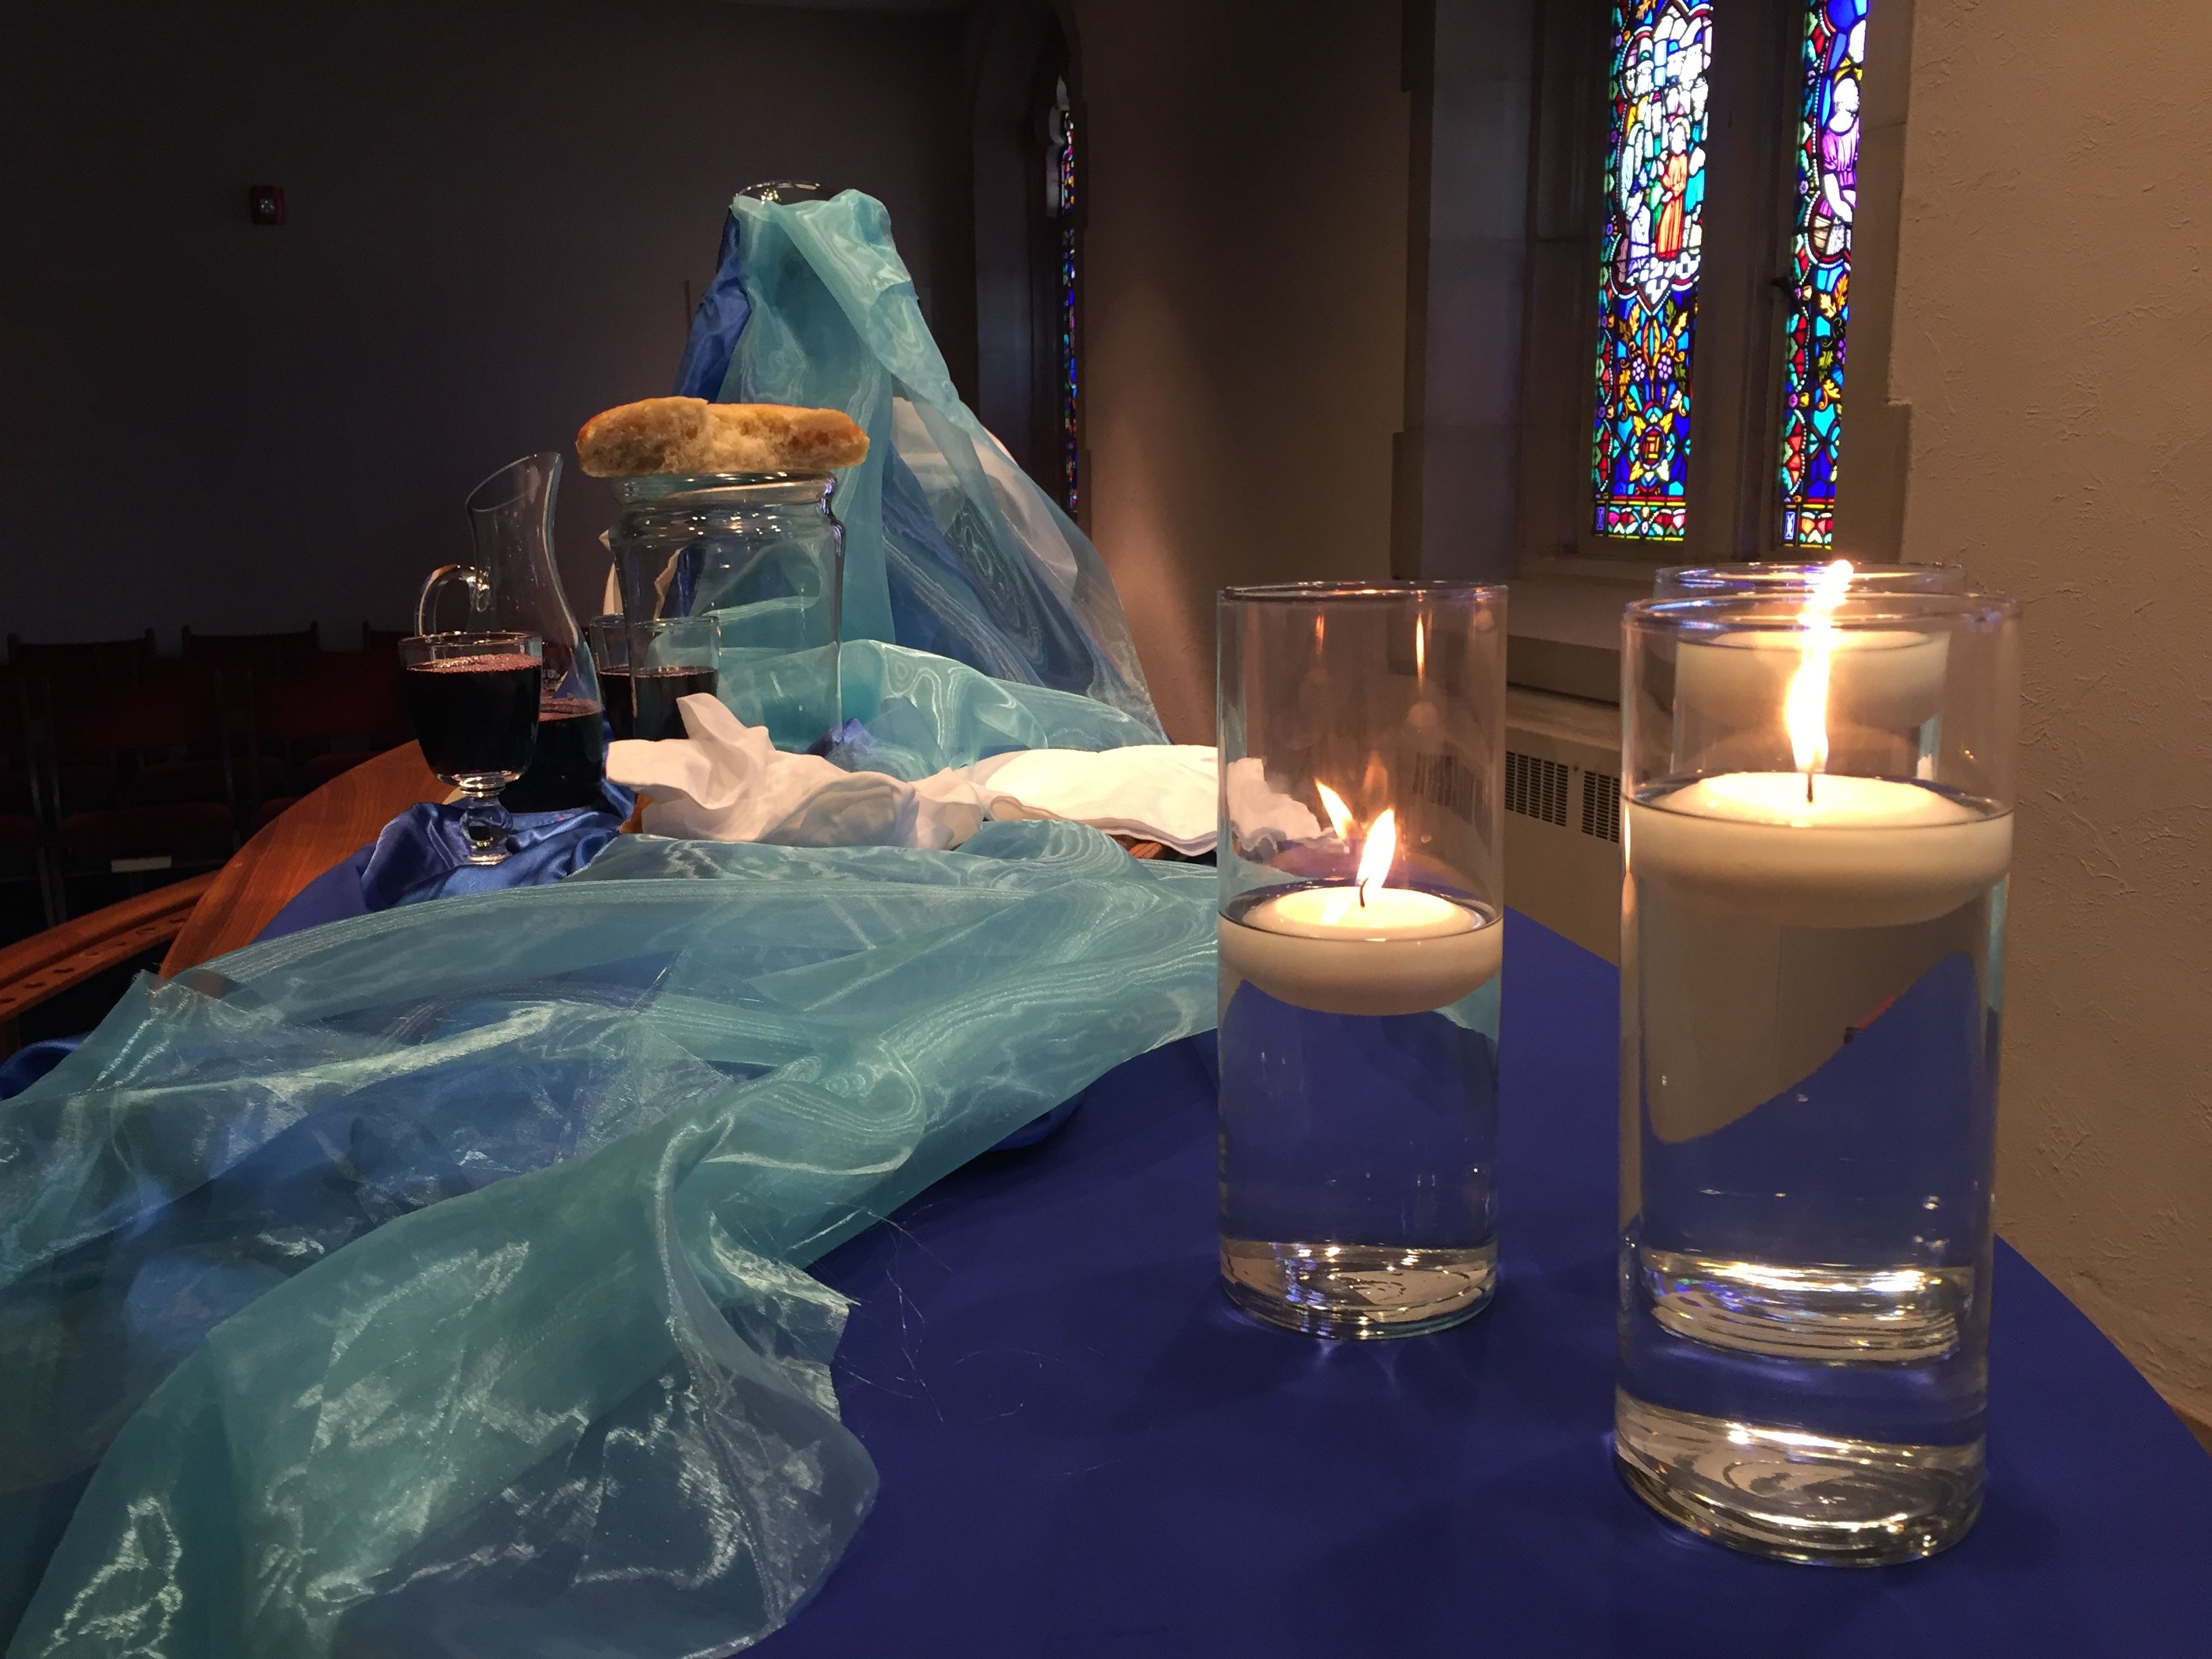 Used during a baptismal renewal service at Peoria First UMC